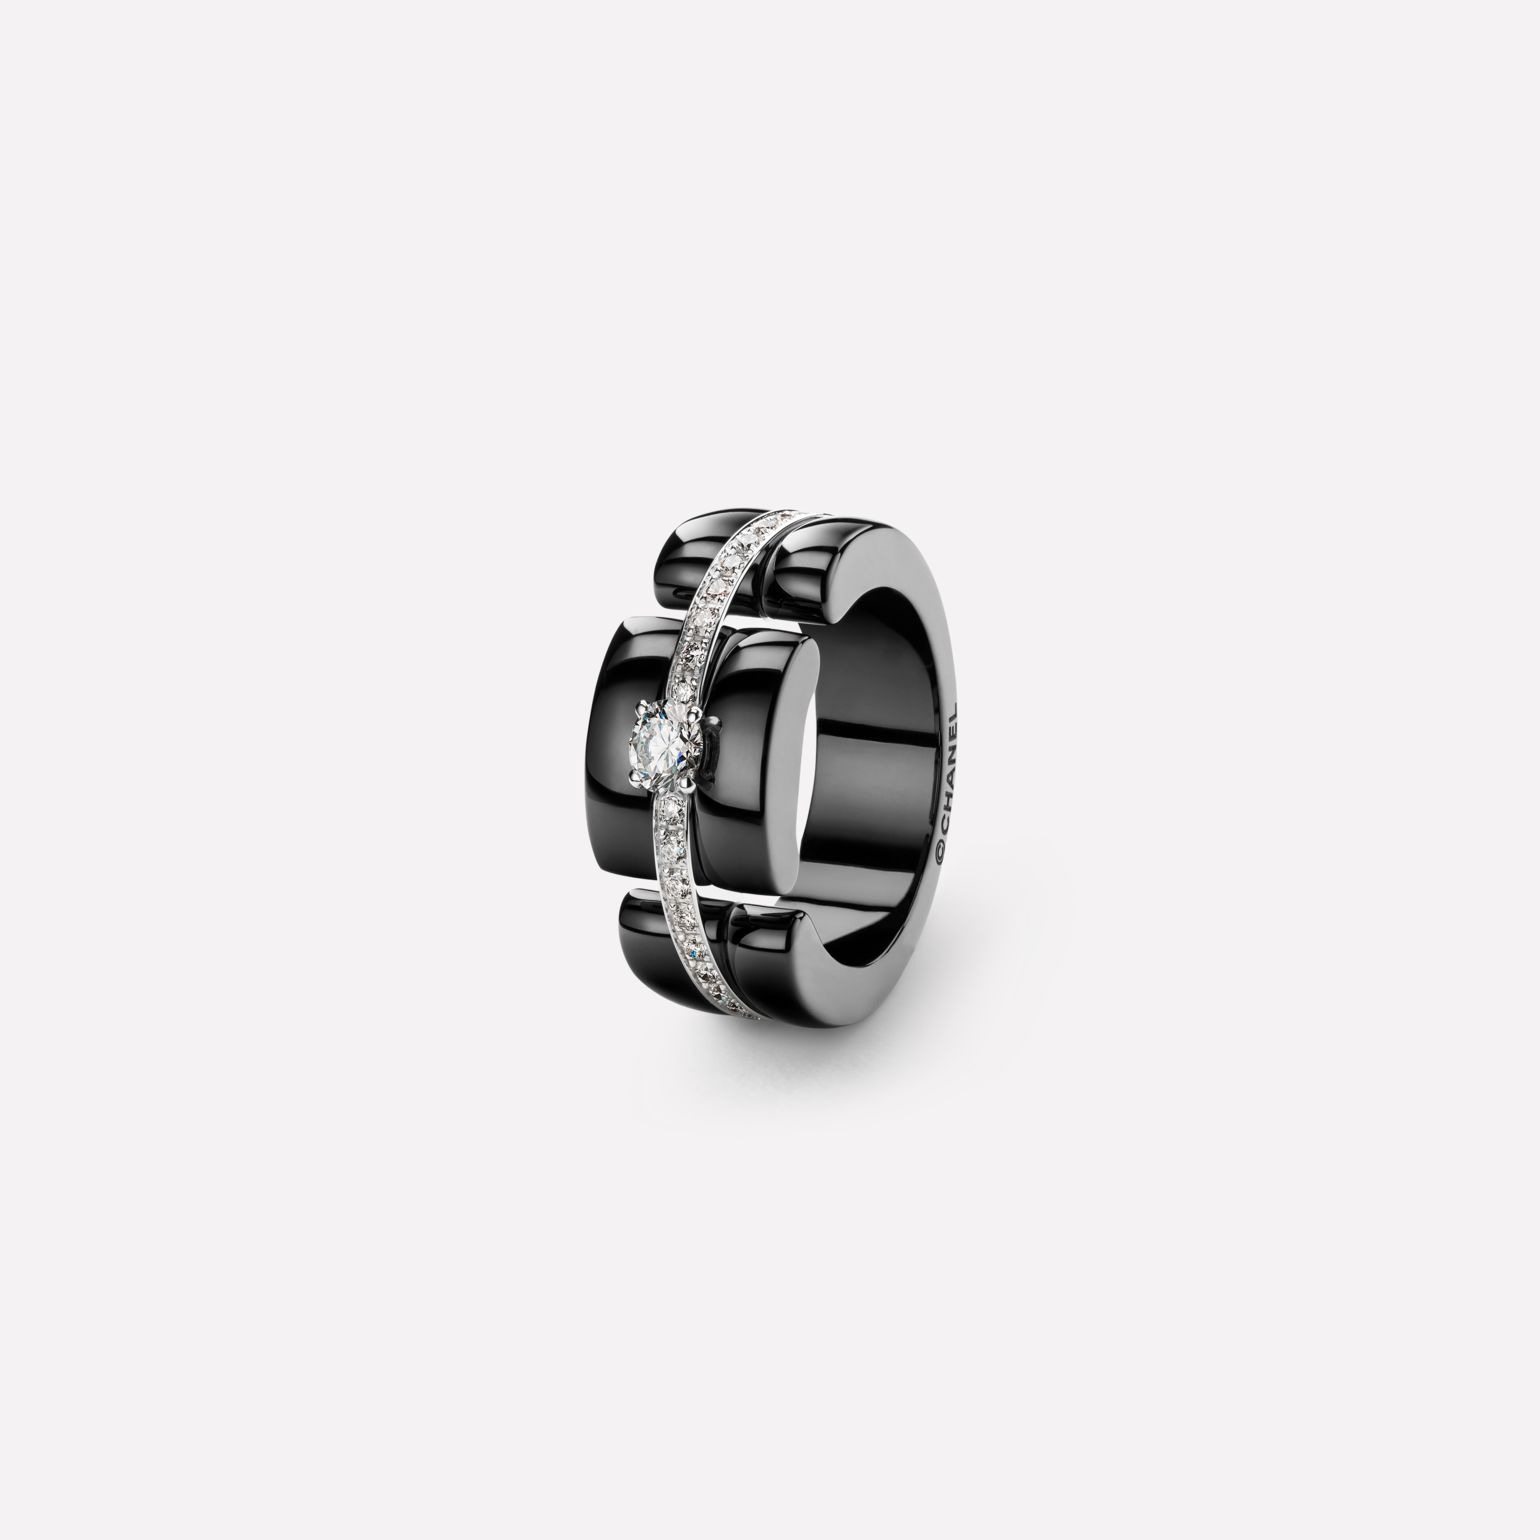 Ultra ring Ultra ring, large version, in black ceramic, 18K white gold and diamonds with one center diamond